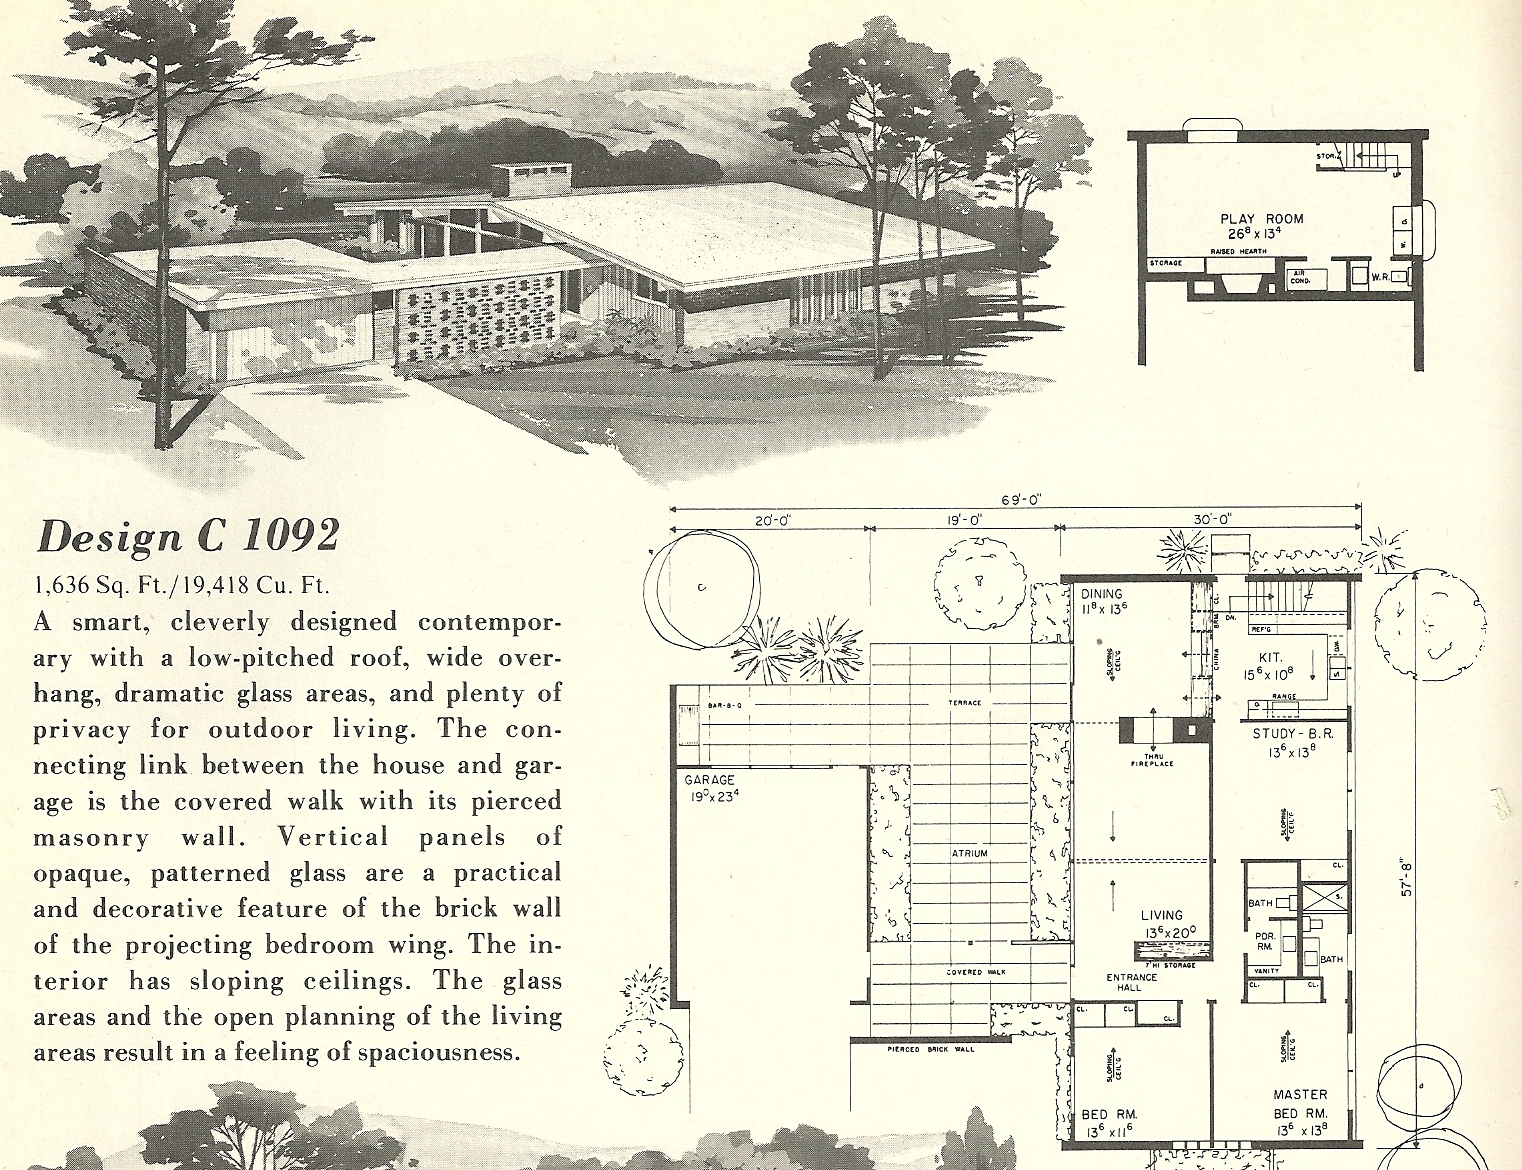 Vintage house plans 1092 antique alter ego - Retro home design ...